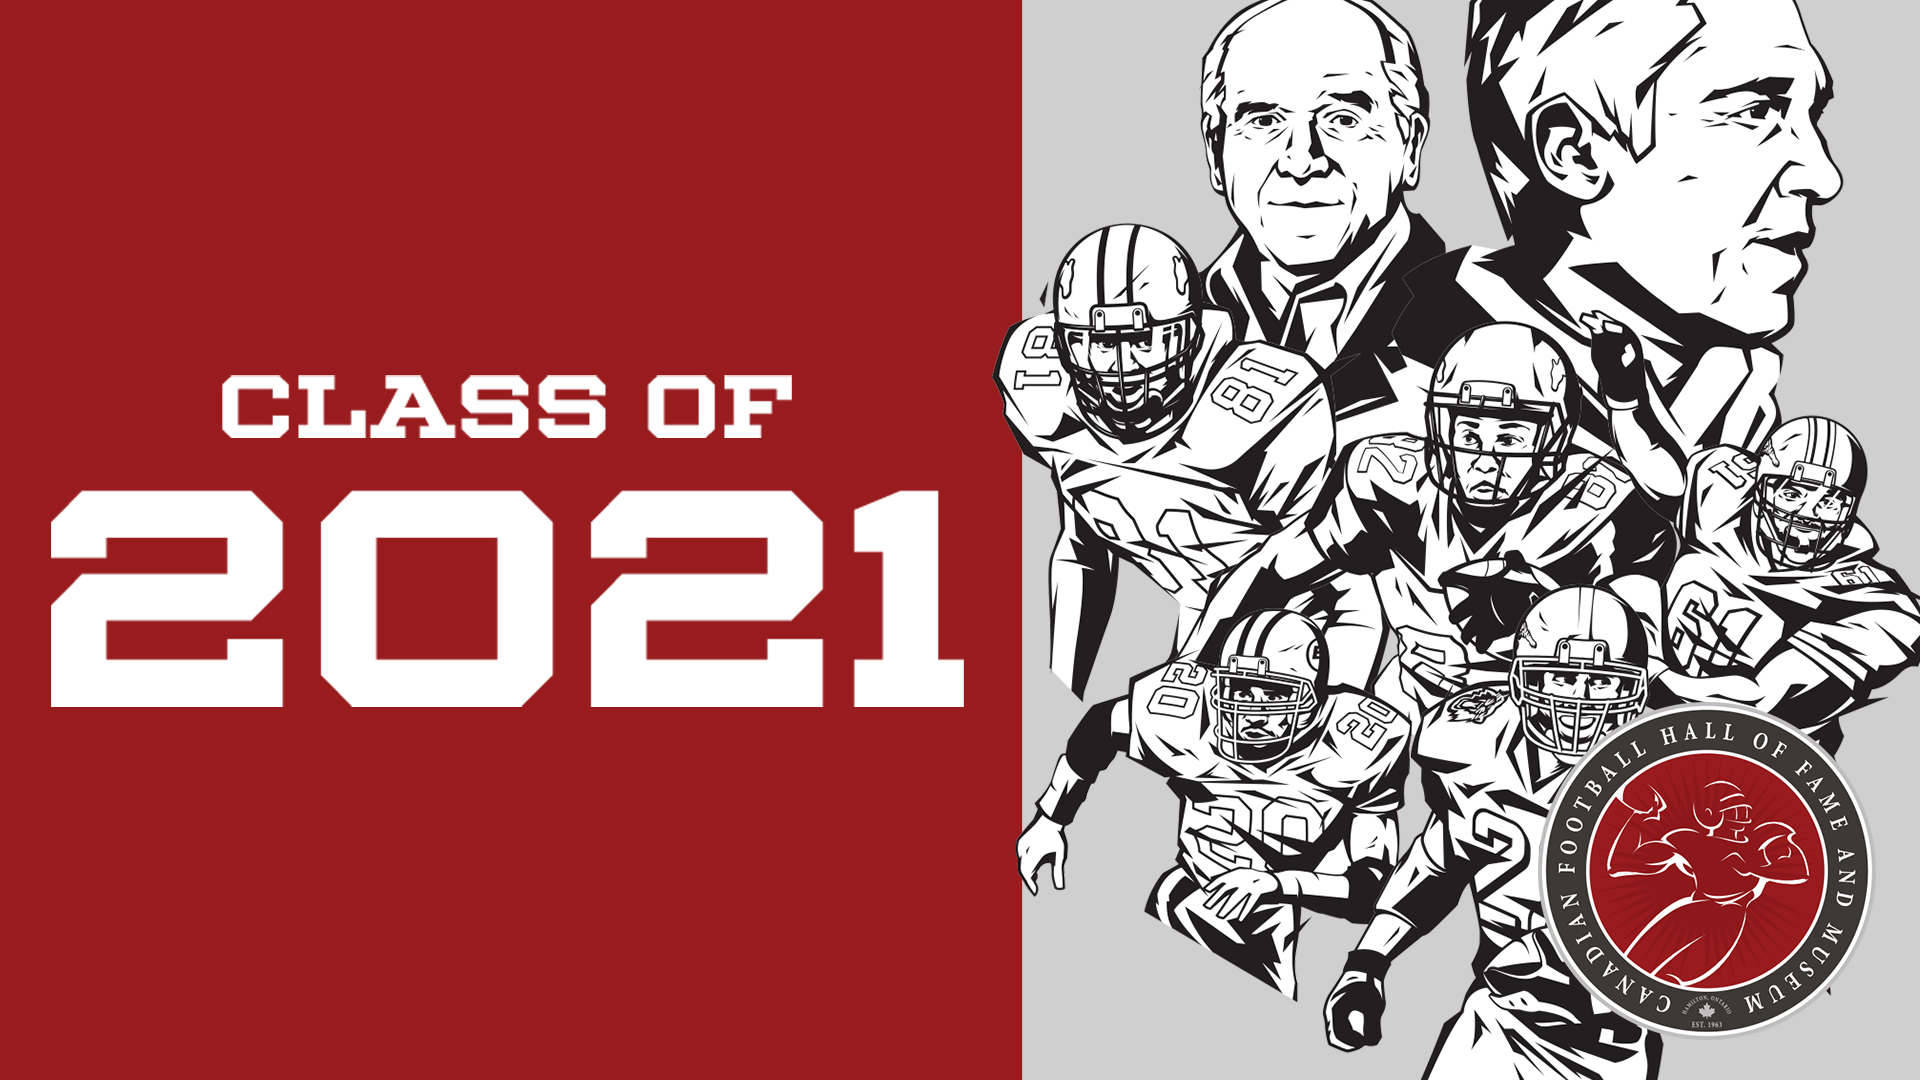 Meet the 2021 Hall of Fame class